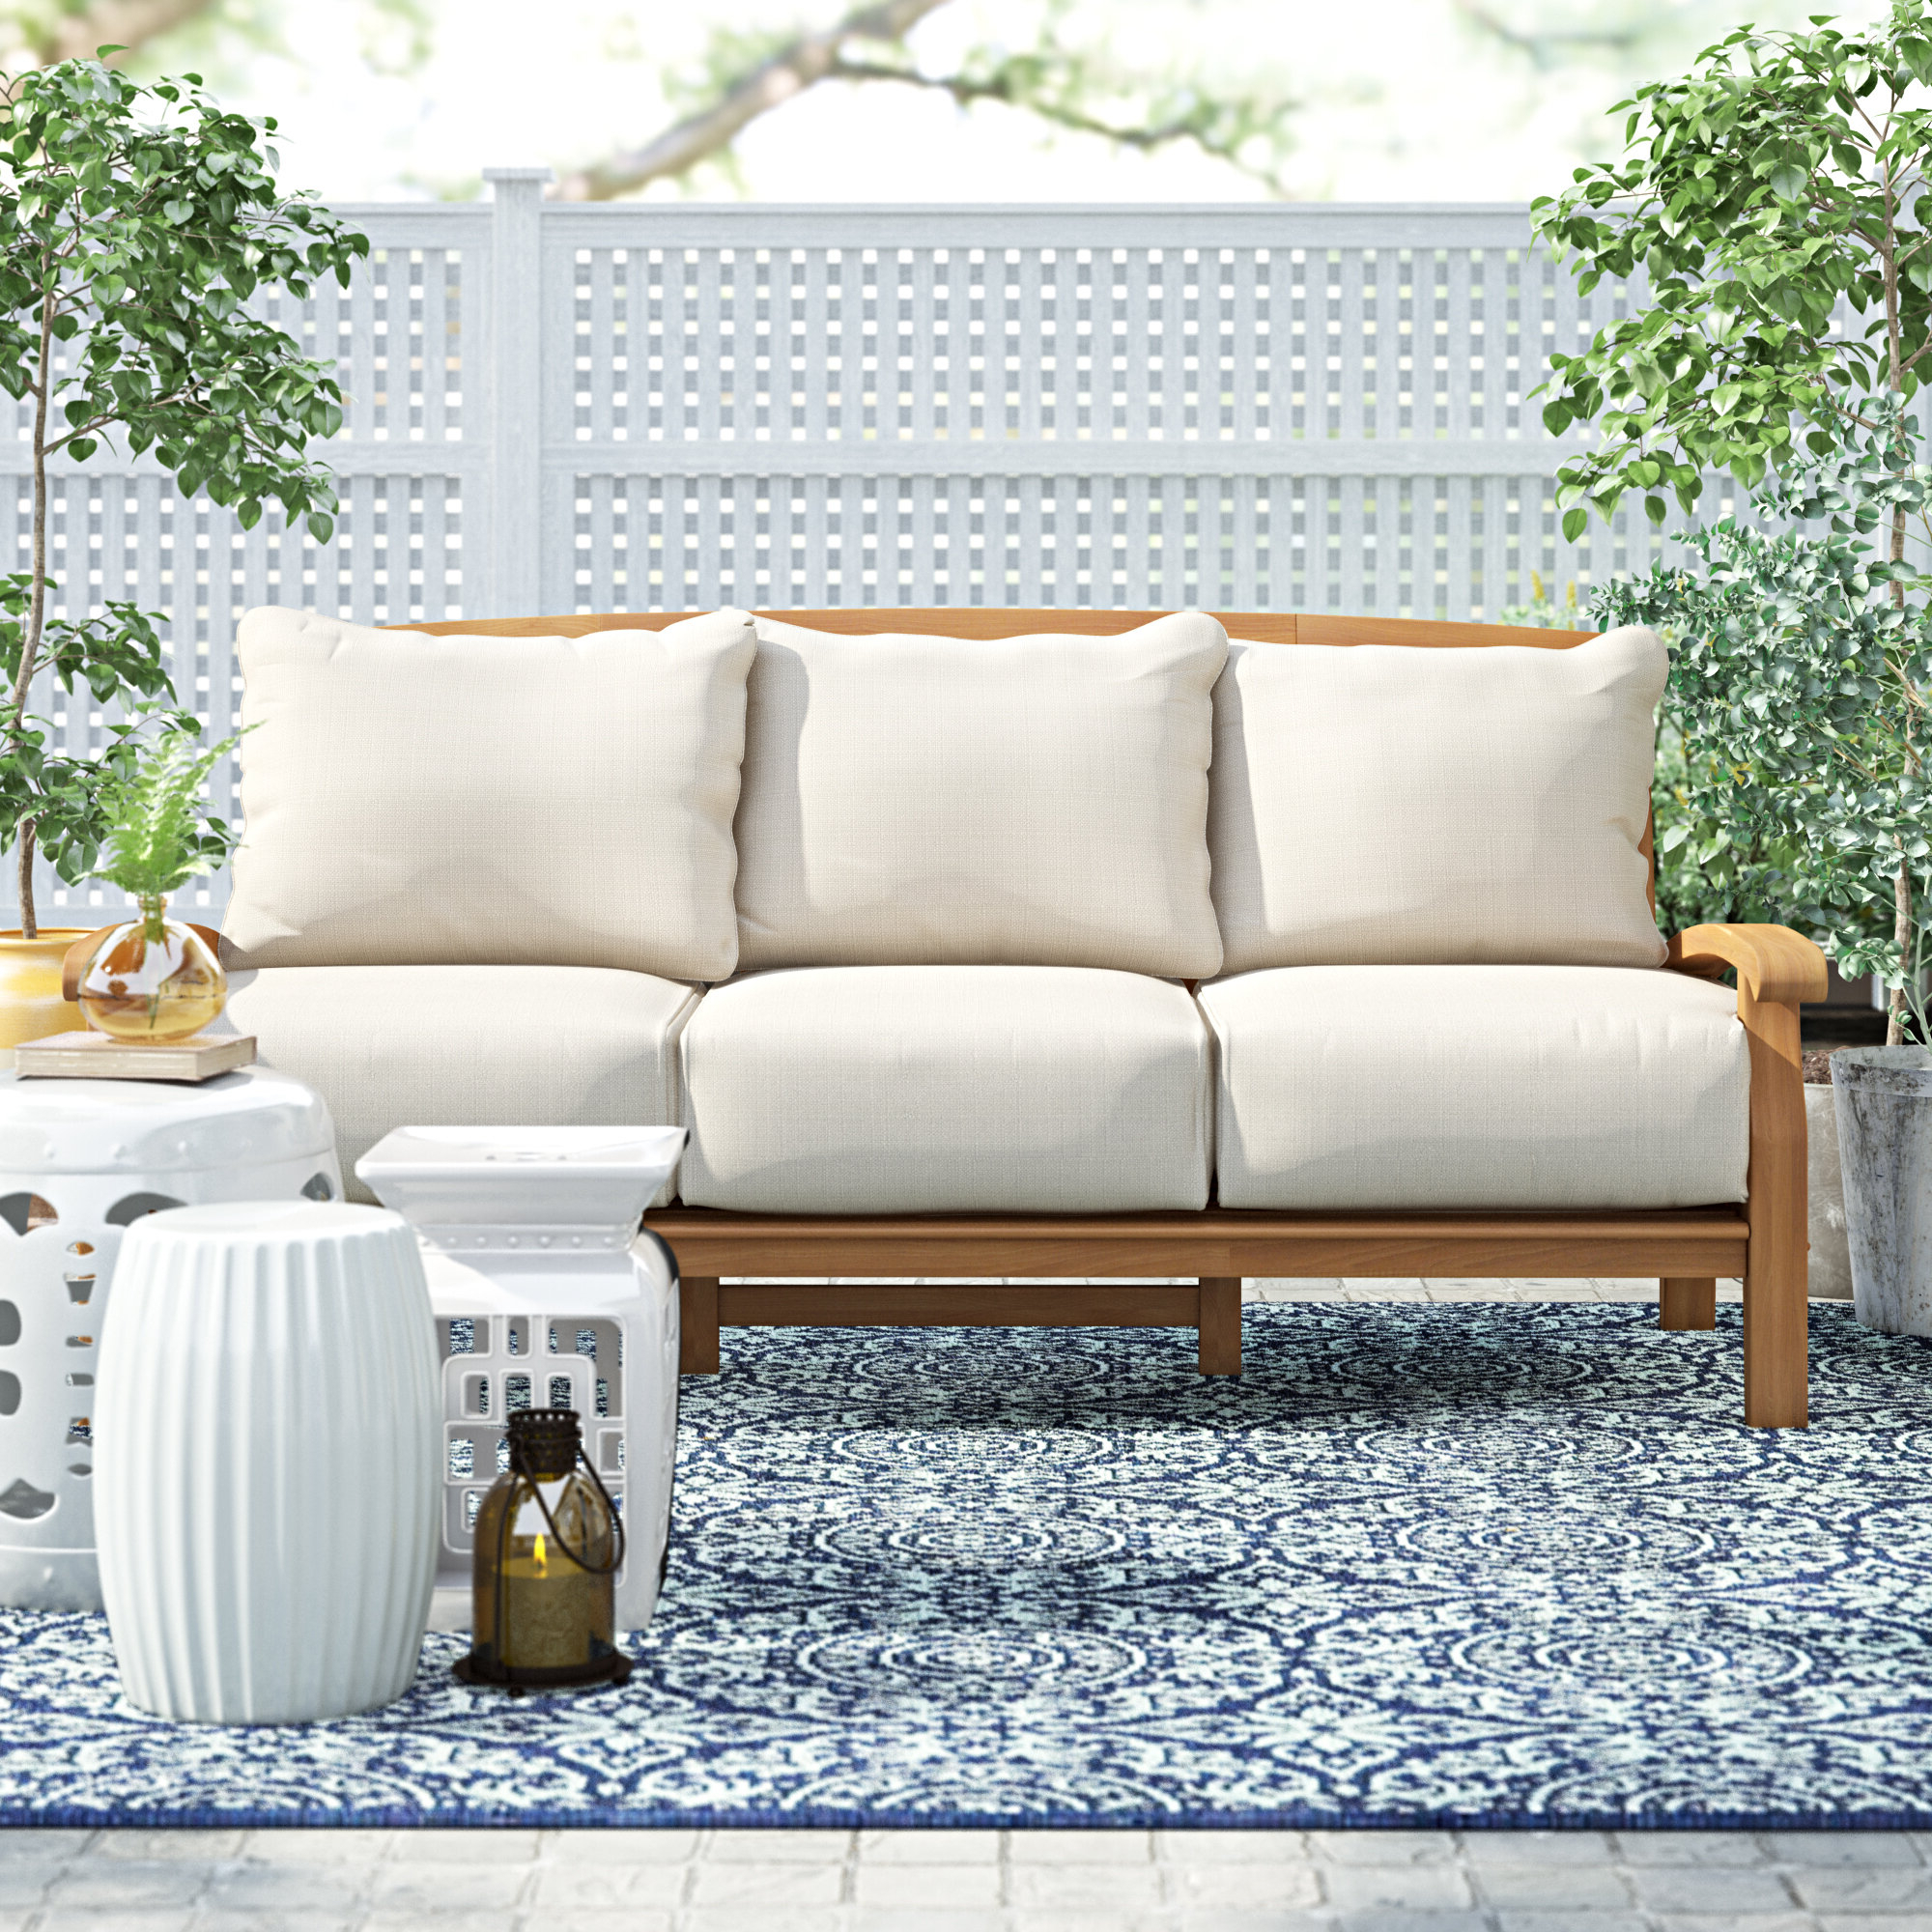 Famous O'kean Teak Patio Sofas With Cushions Pertaining To Summerton Teak Patio Sofa With Cushions (View 9 of 25)